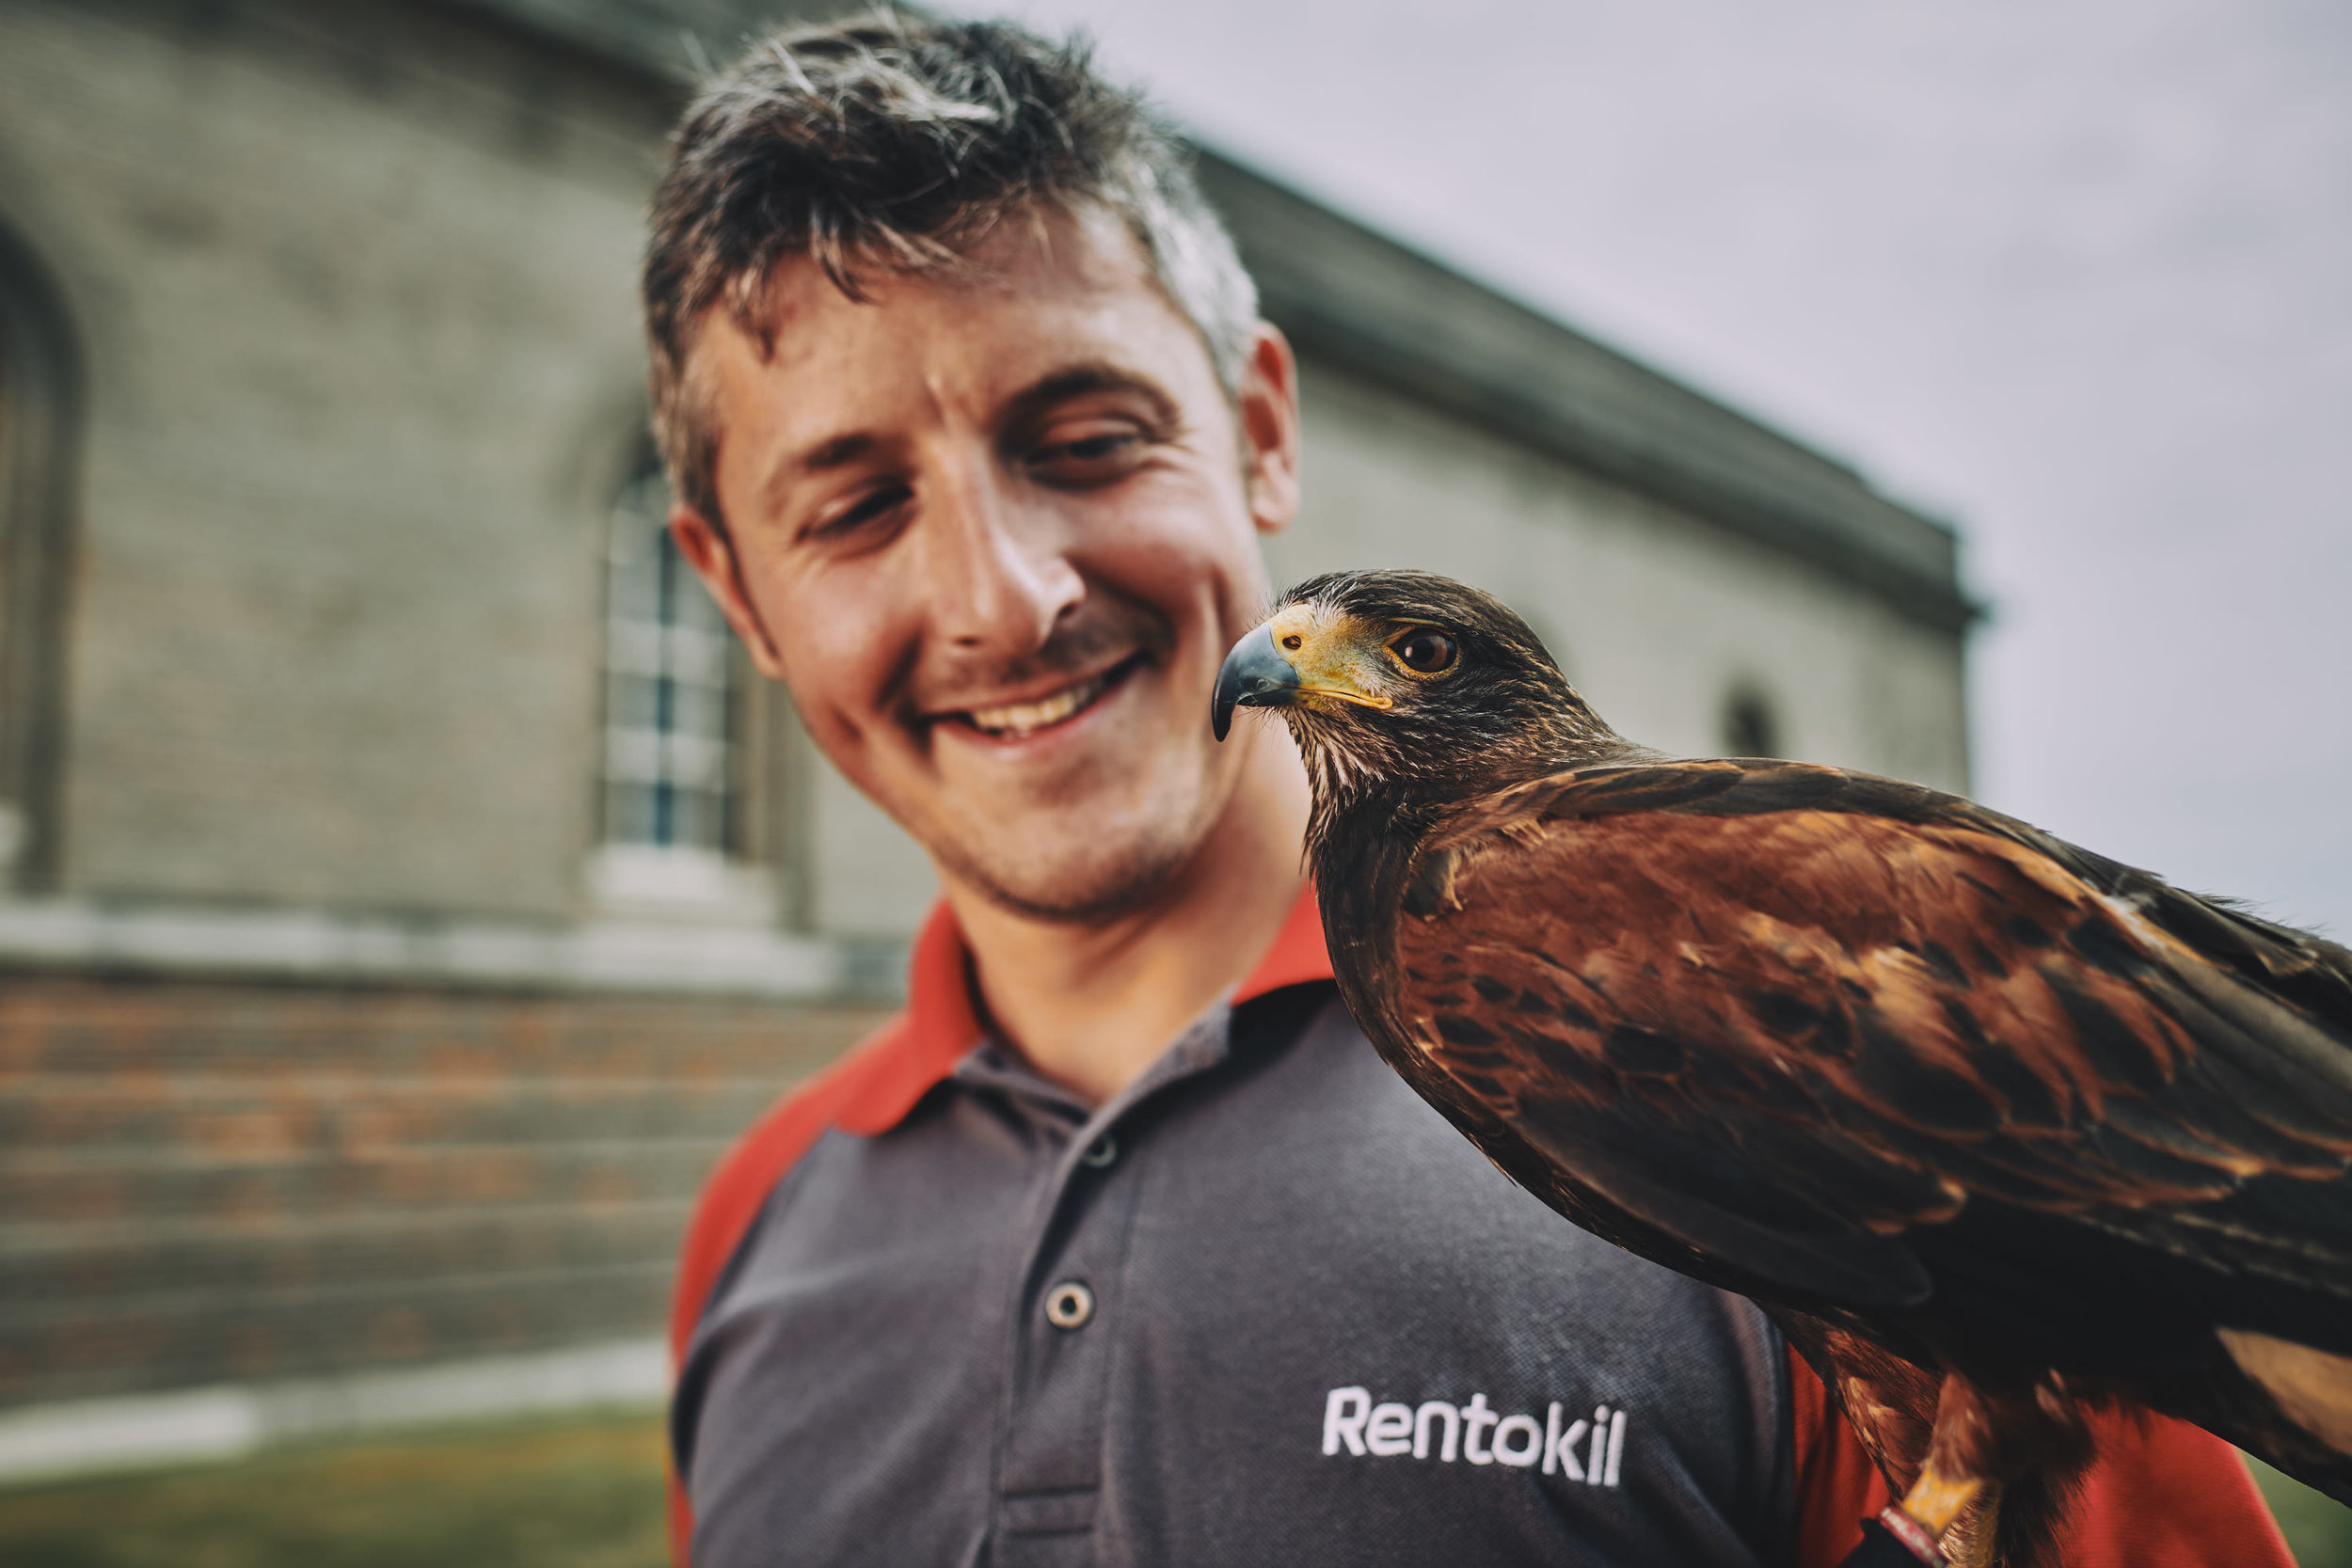 natural environmental reportage  business photography for services business by yorkshire based matthew lloyd 9.jpg